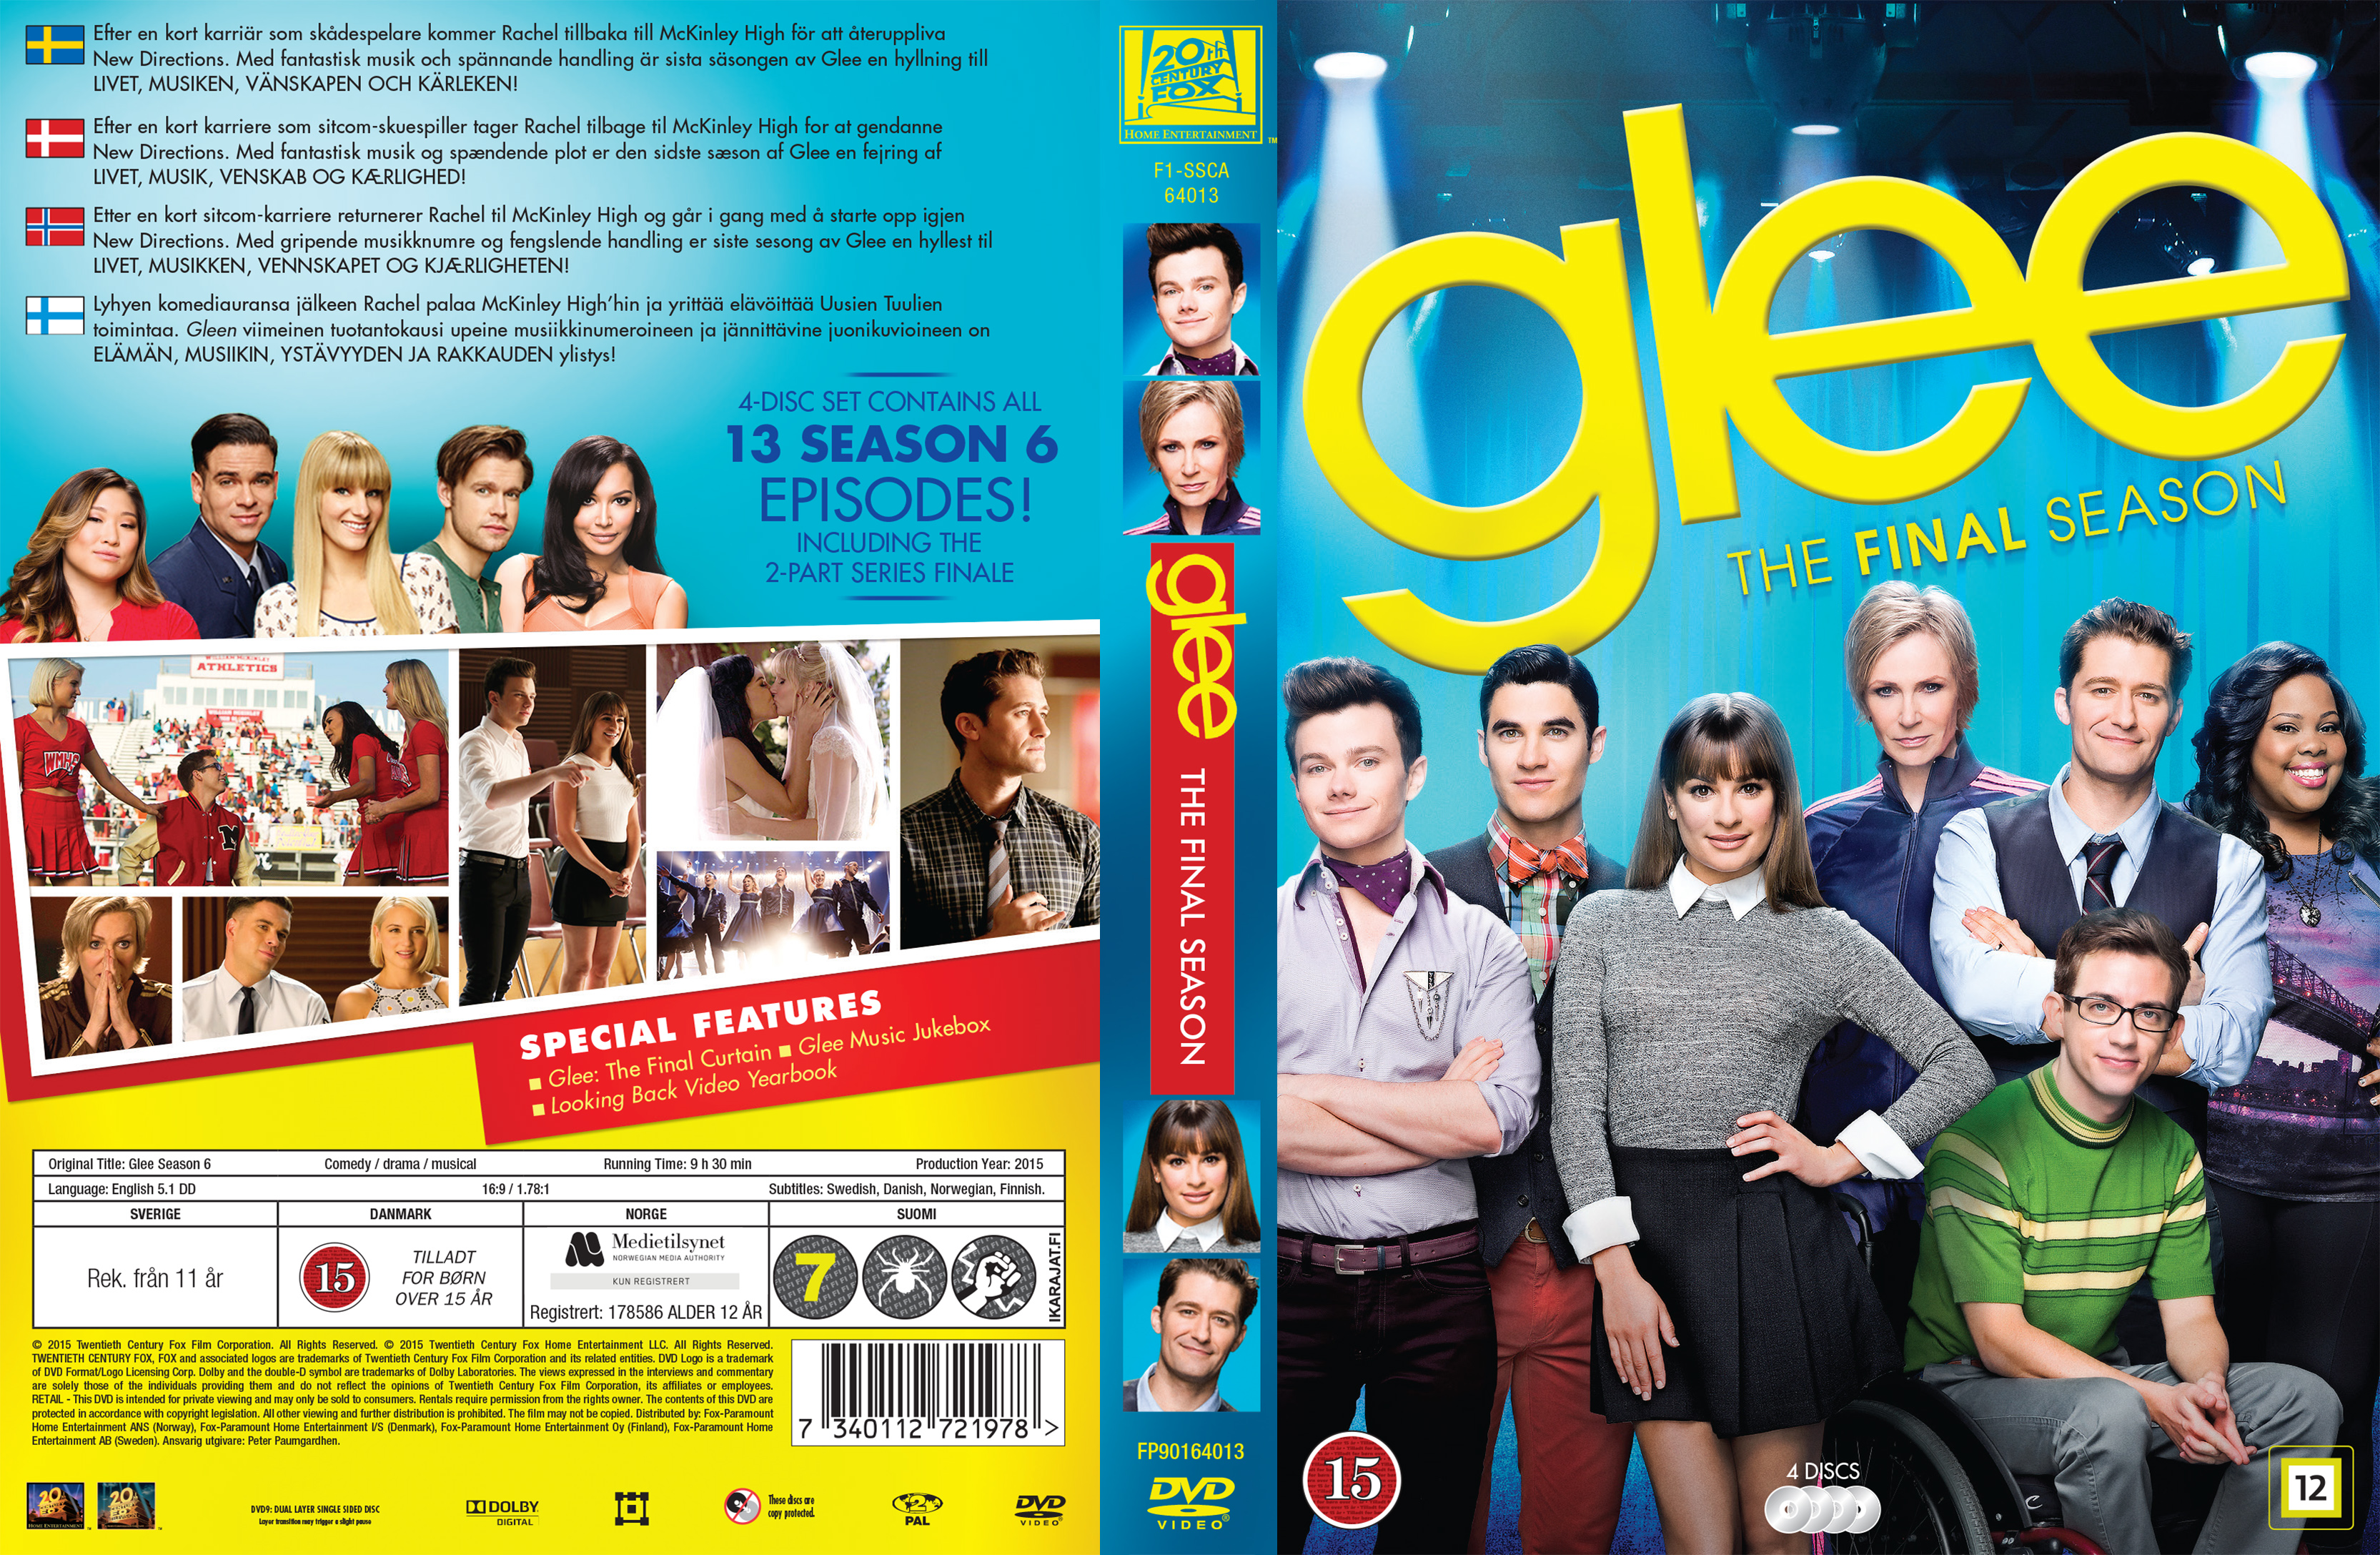 Glee season 5 dvd release date in Australia